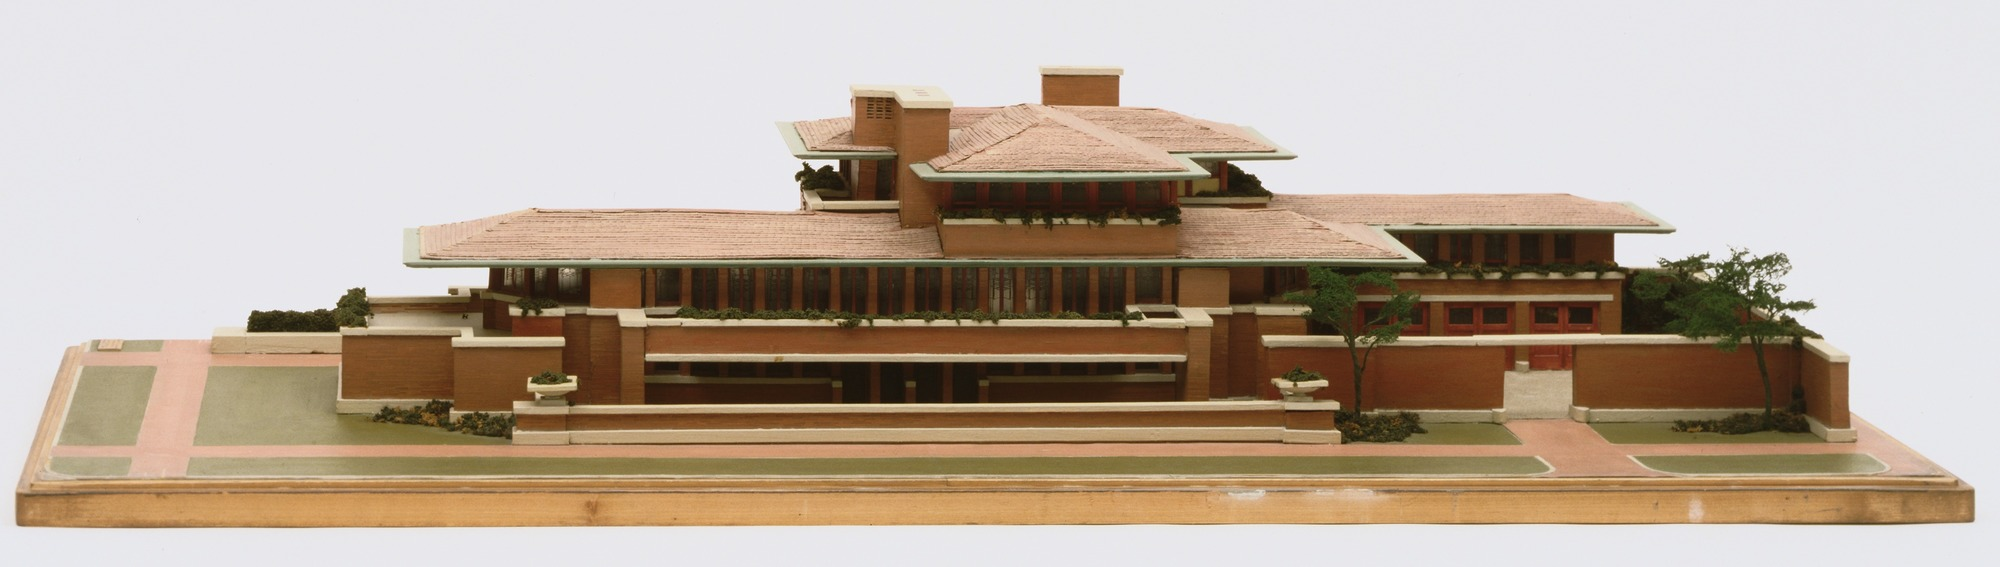 Robbie House frank Lloyd Wright